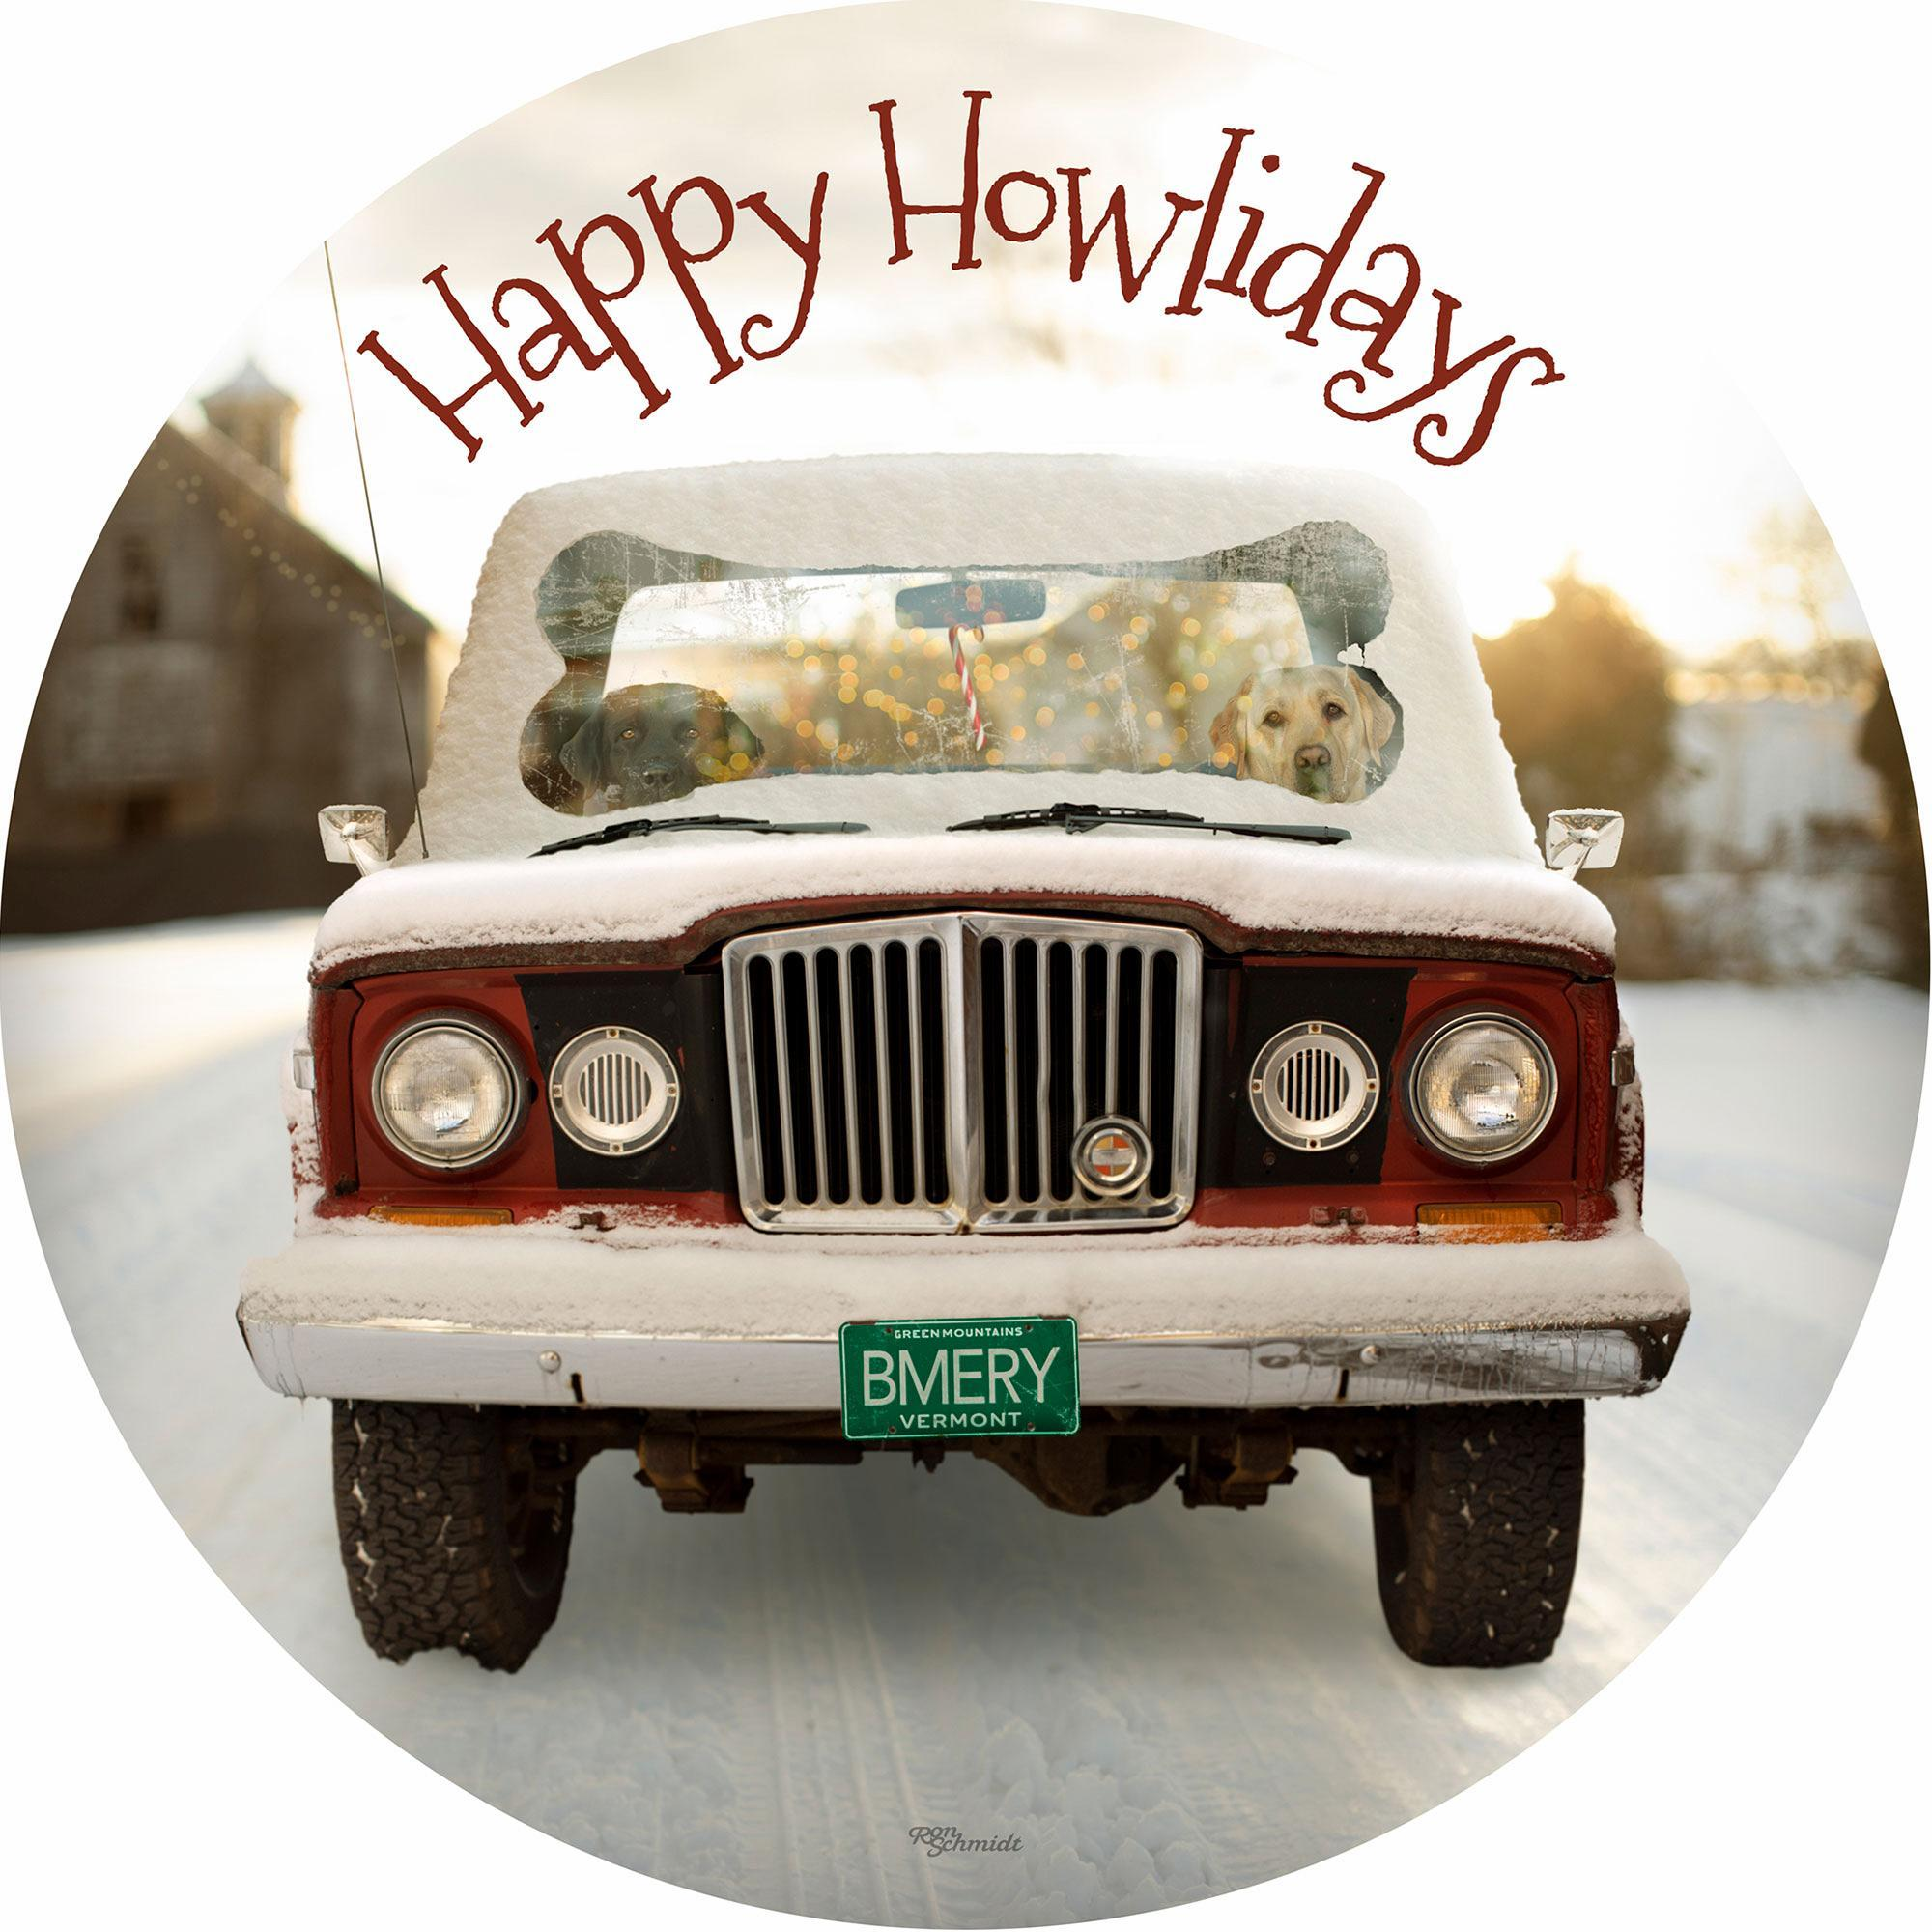 "Happy Howl-idays 21"" Round Wood Sign"